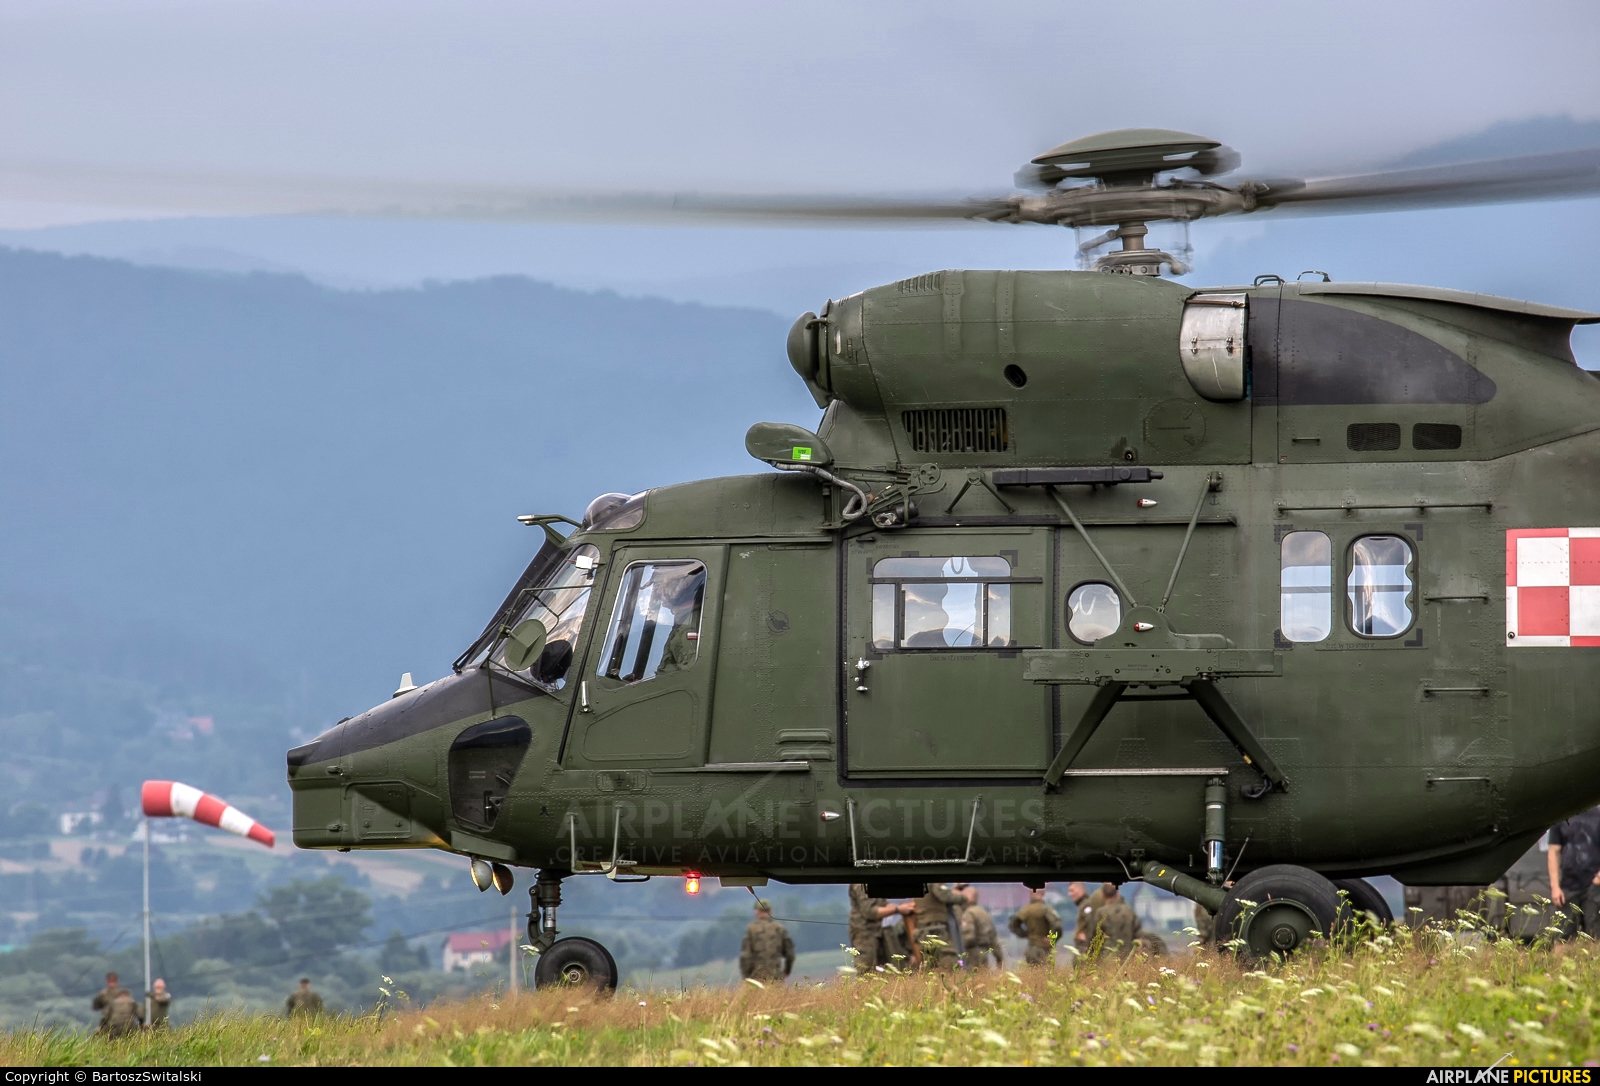 Poland - Army 0807 aircraft at Undisclosed location